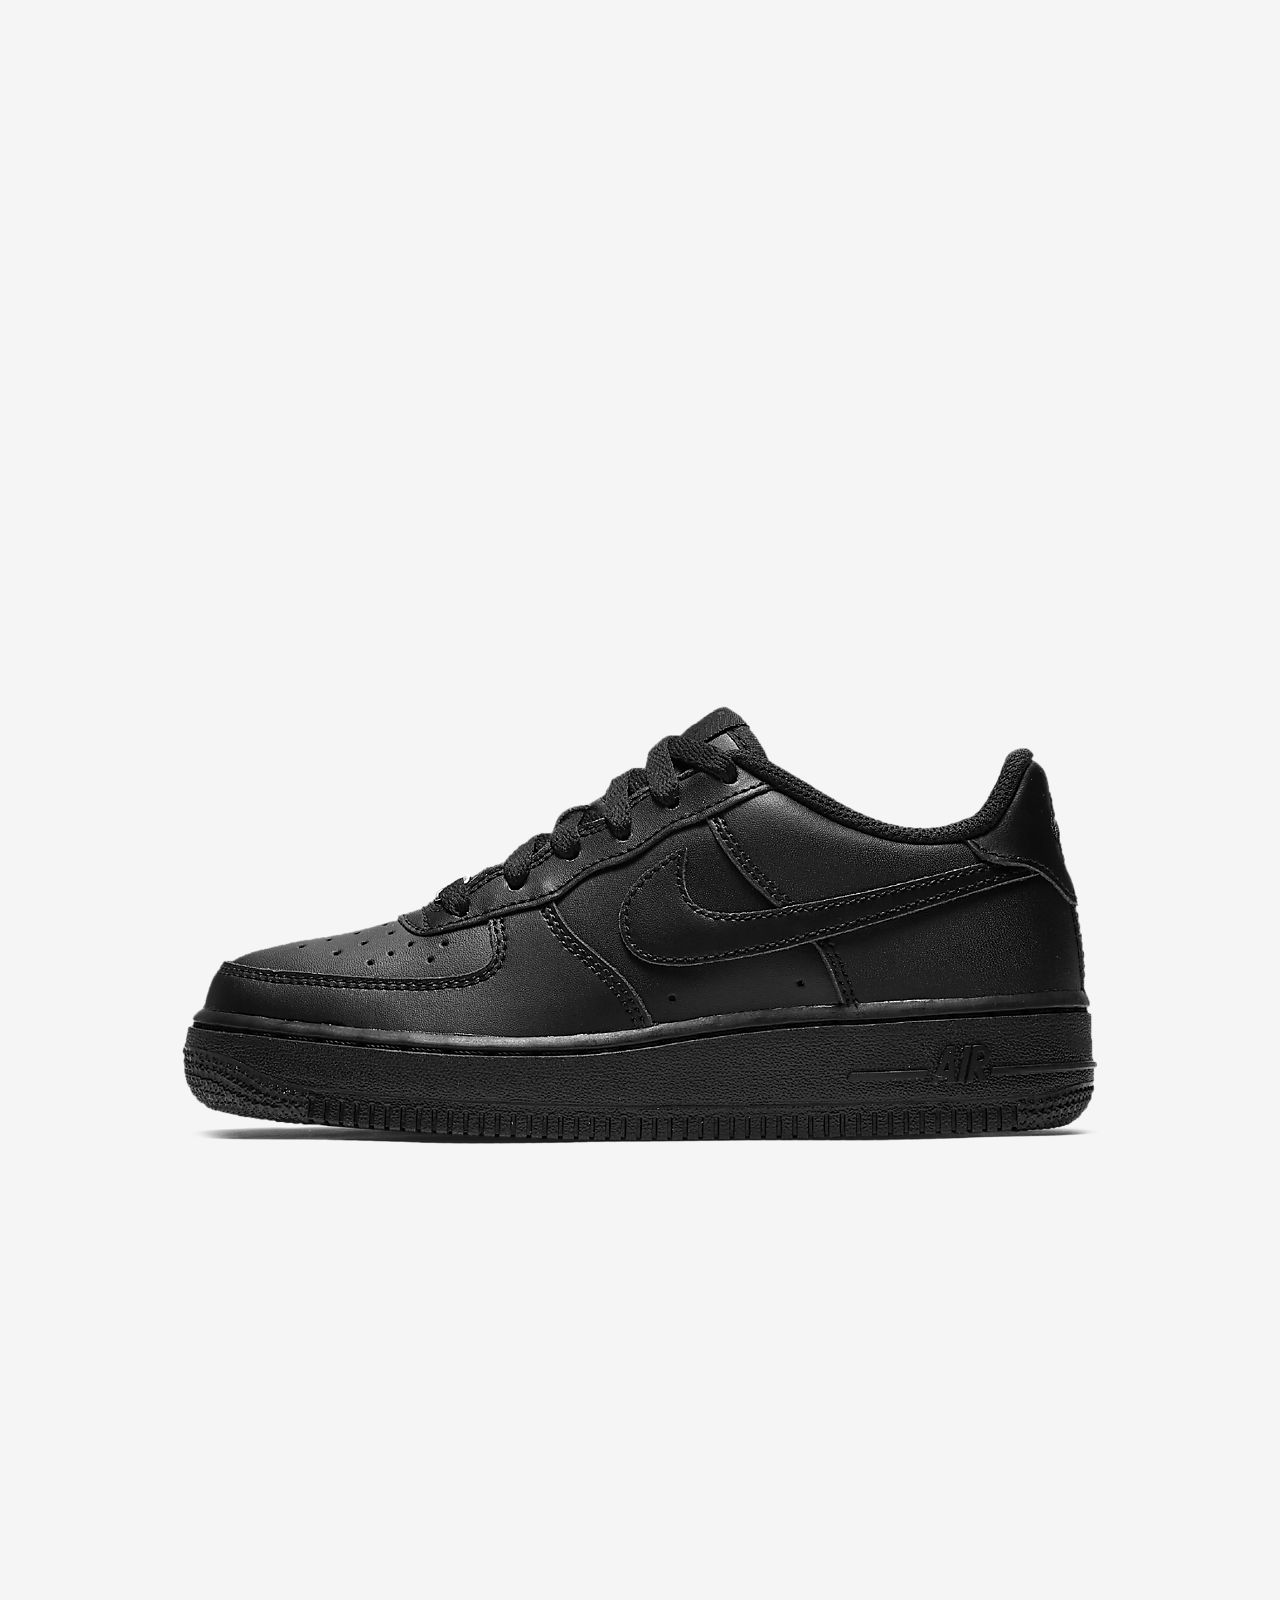 reputable site d9c3b 4c8ac ... Nike Air Force 1 Older Kids Shoe